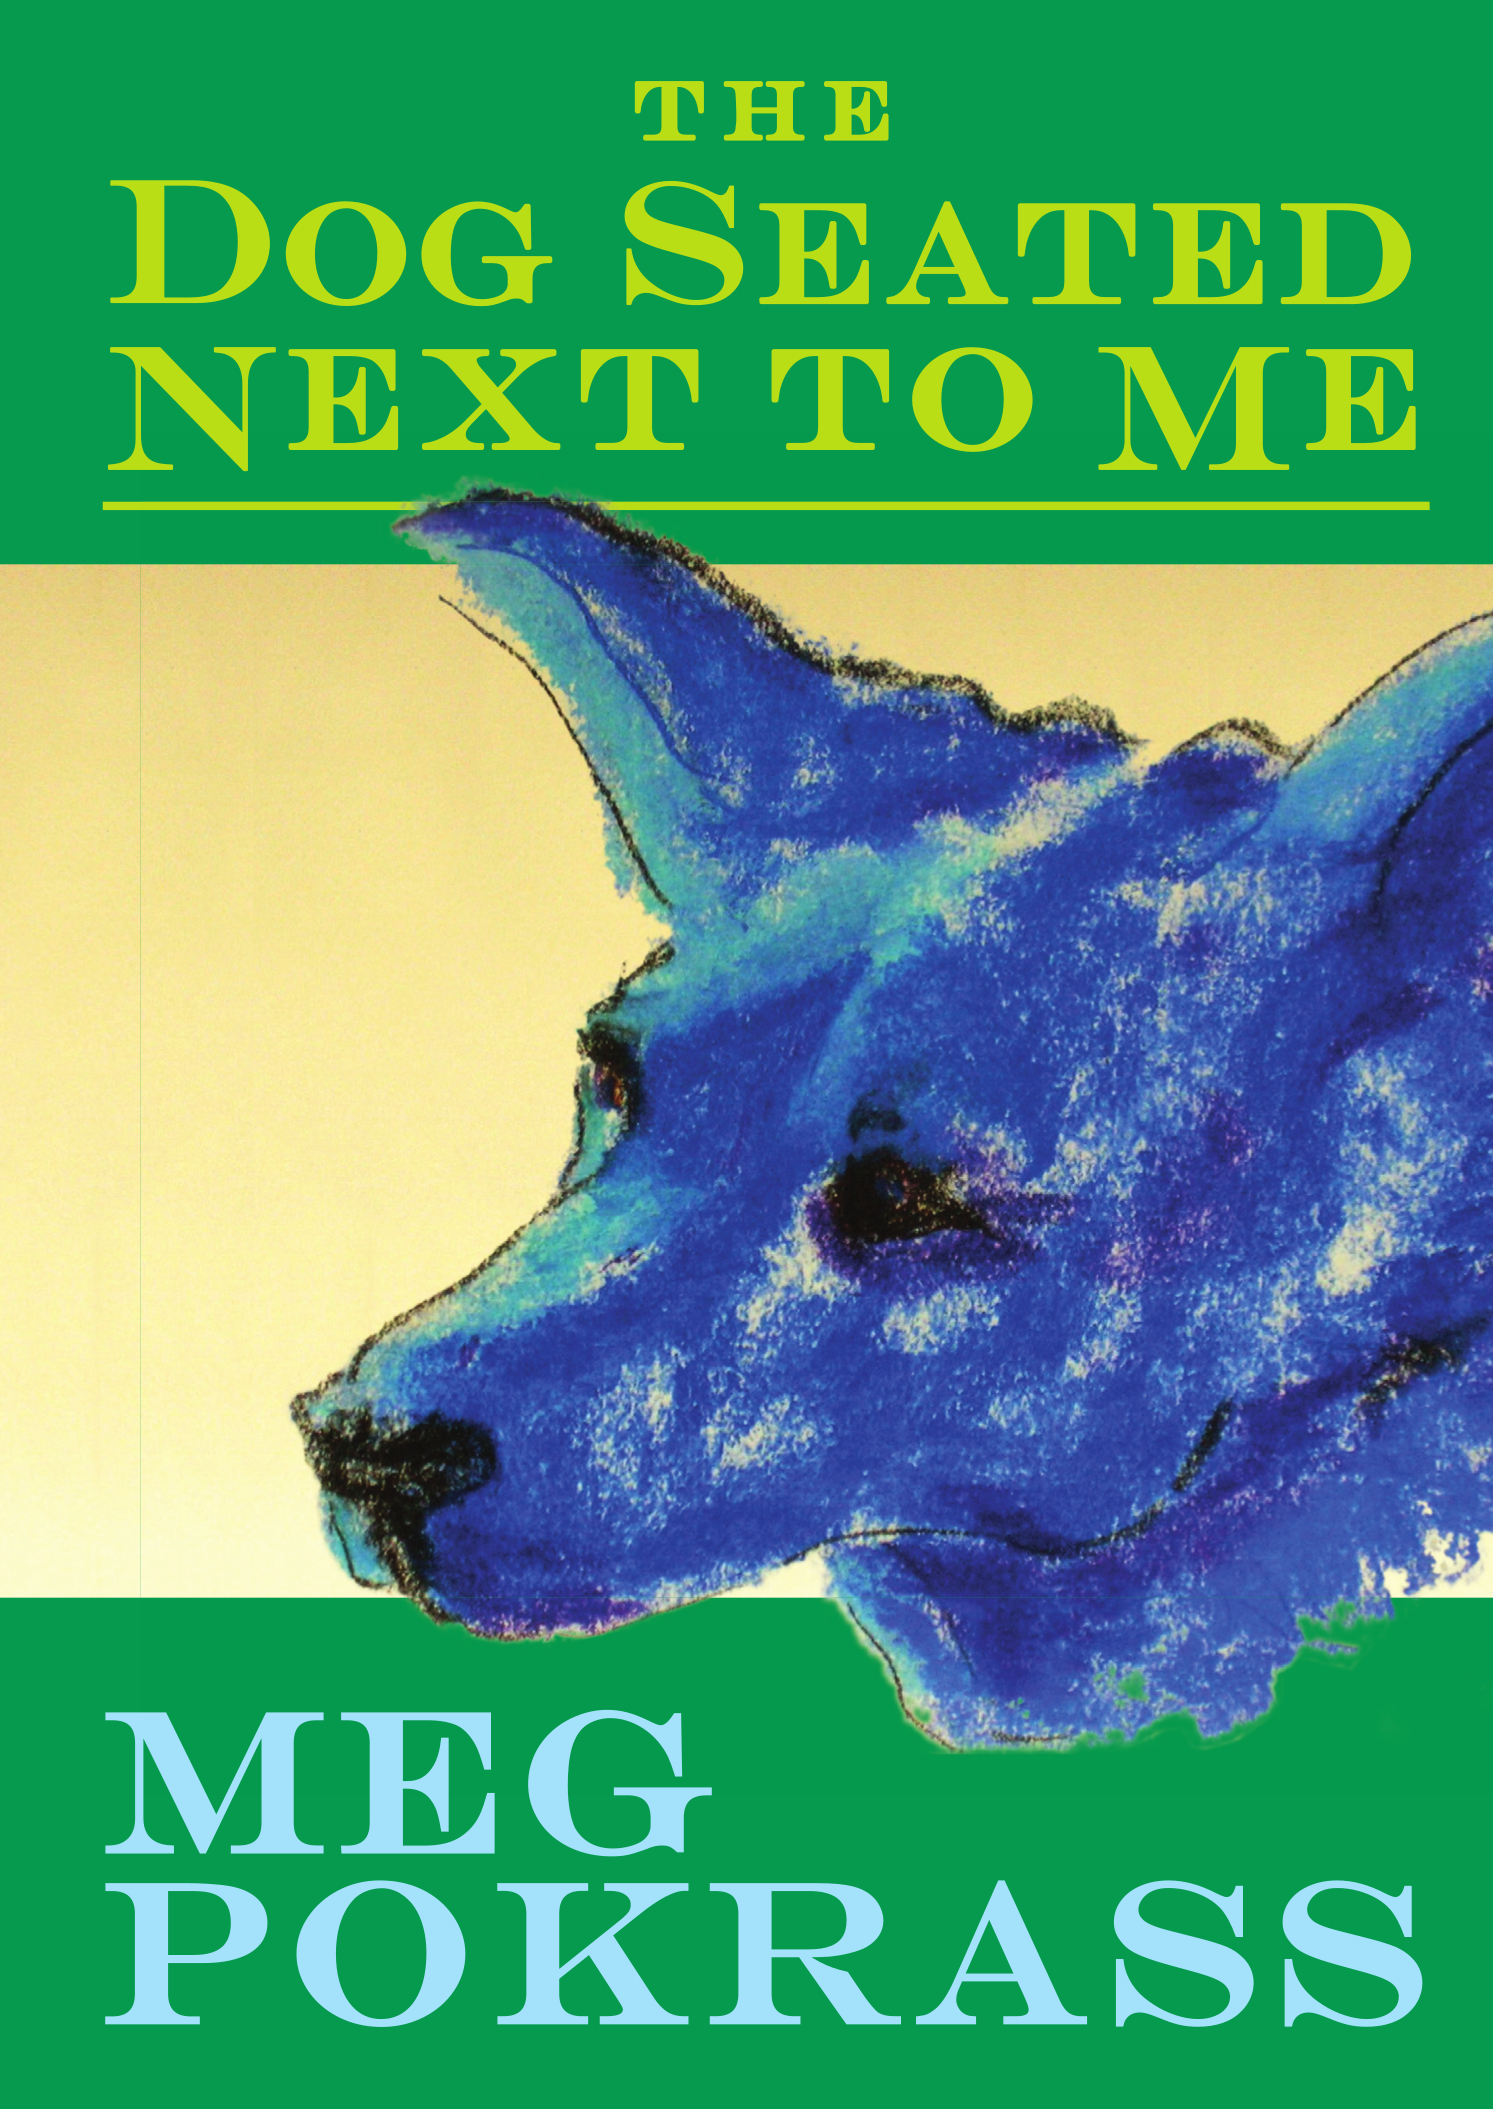 meg_pokrass-the_dog_seated_next_to_me-front_cover